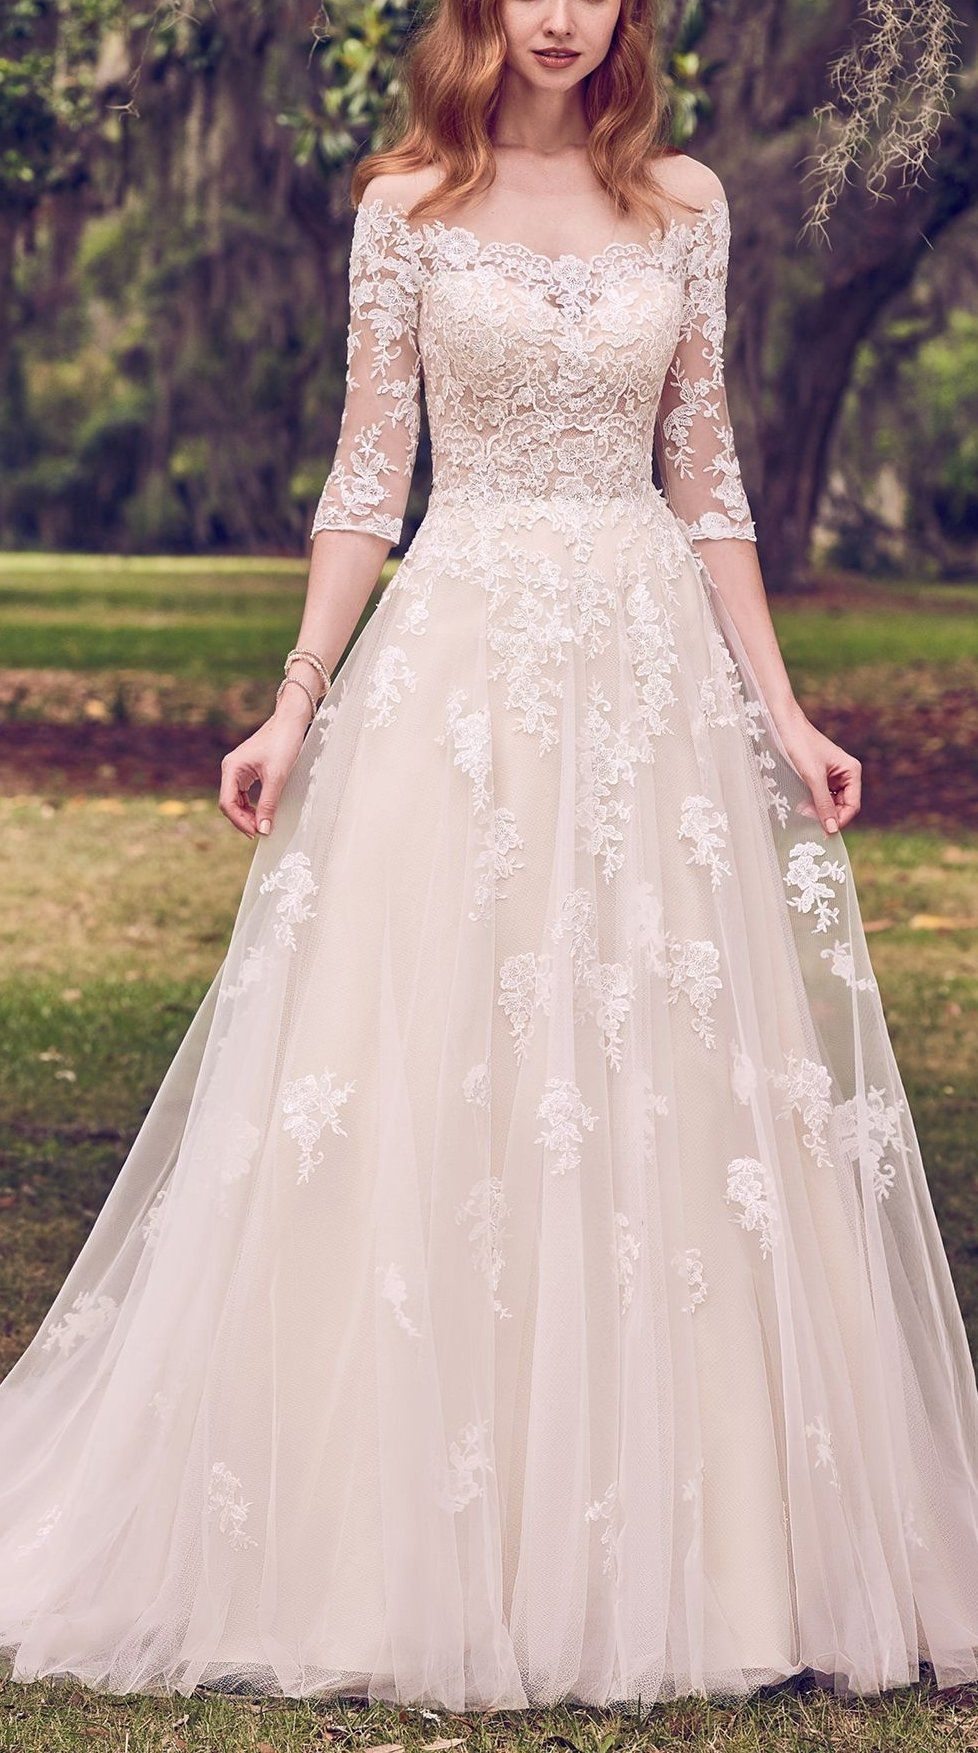 Best Wedding Dresses for a Rustic Wedding Fashion Trends Dresses